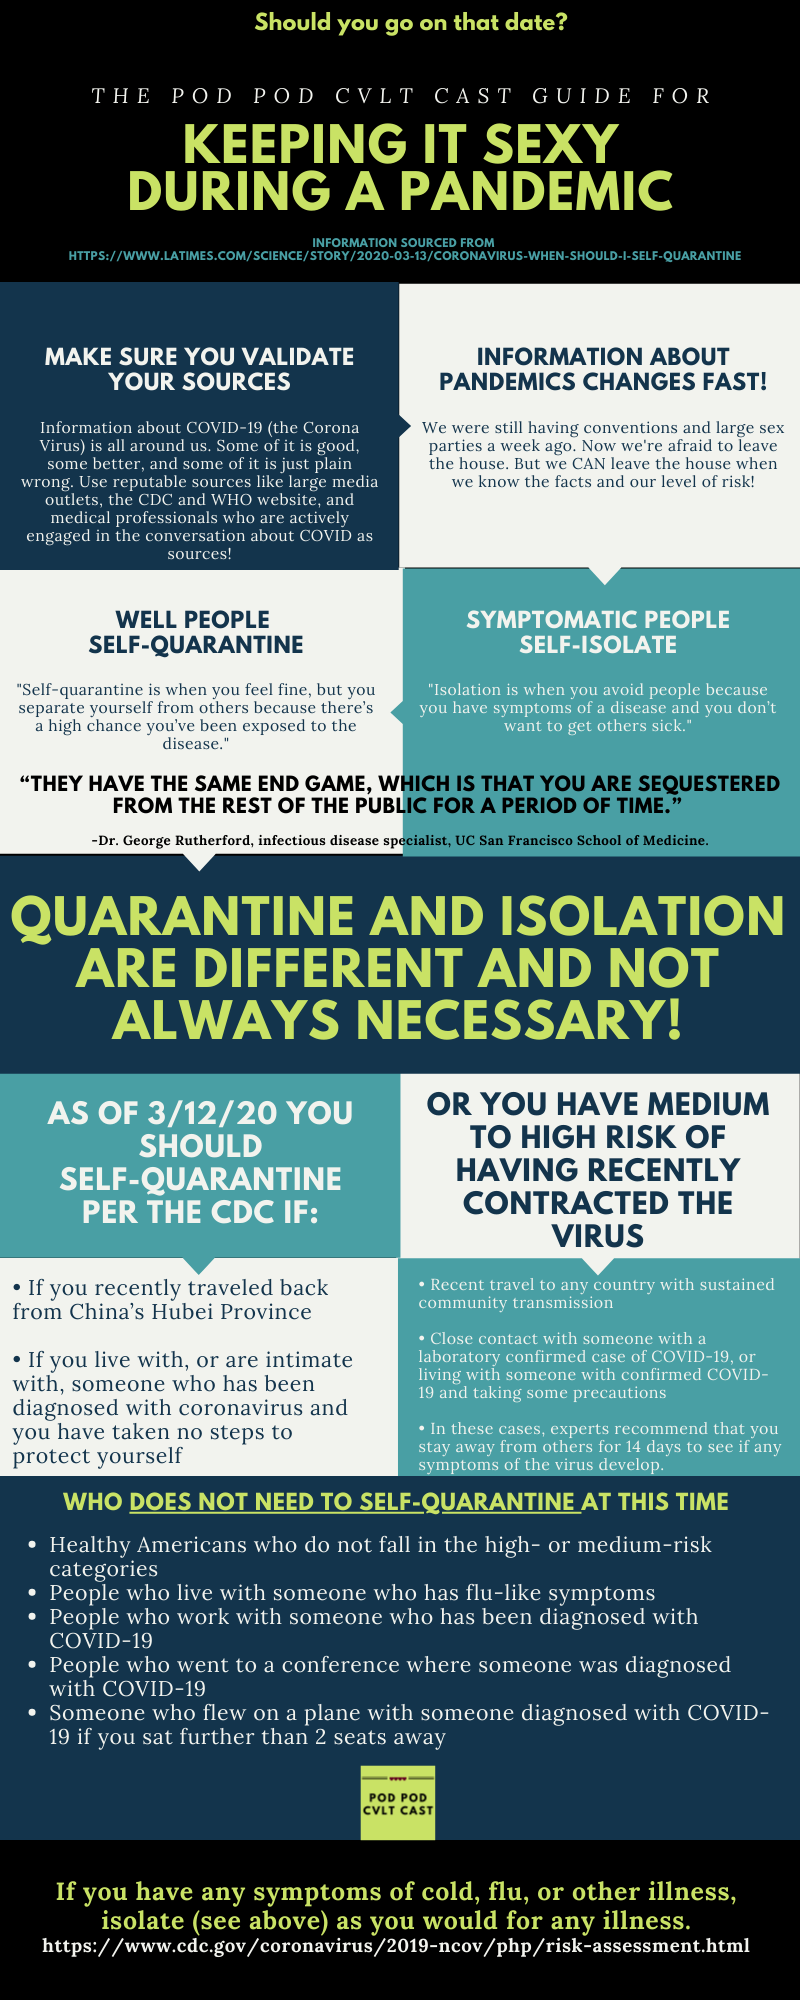 Keeping it Sexy During a Pandemic Check original sources for full data in this infographic -i-self-quarantine &  https://www.cdc.gov/coronavirus/2019-ncov/php/risk-assessment.html by podpodcvltcast.com